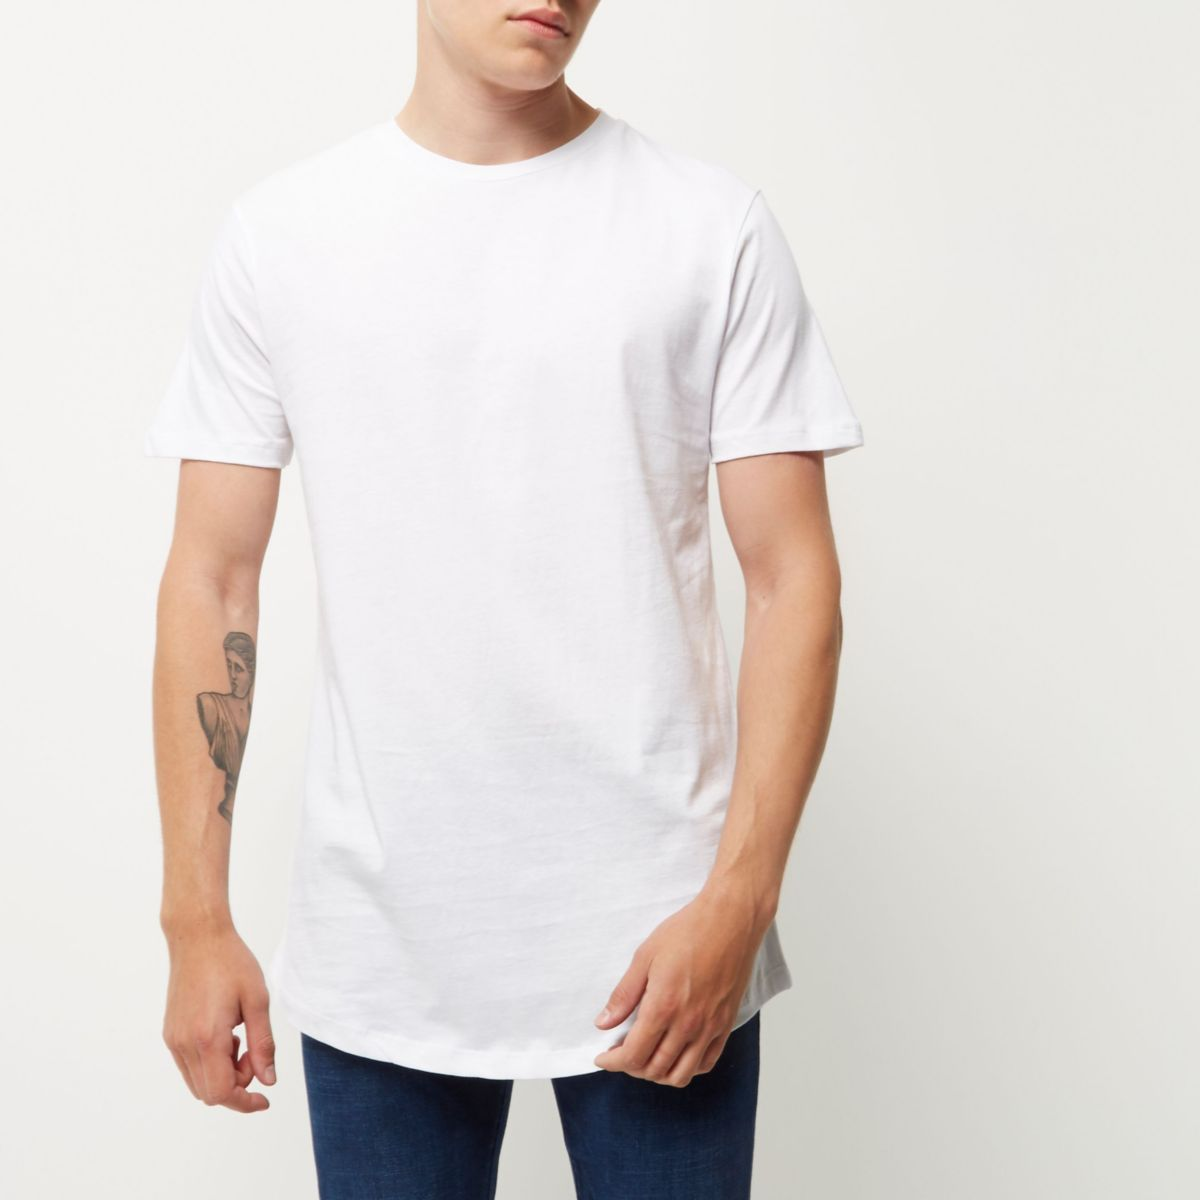 White curved hem longline t shirt t shirts t shirts for Who makes the best white t shirts